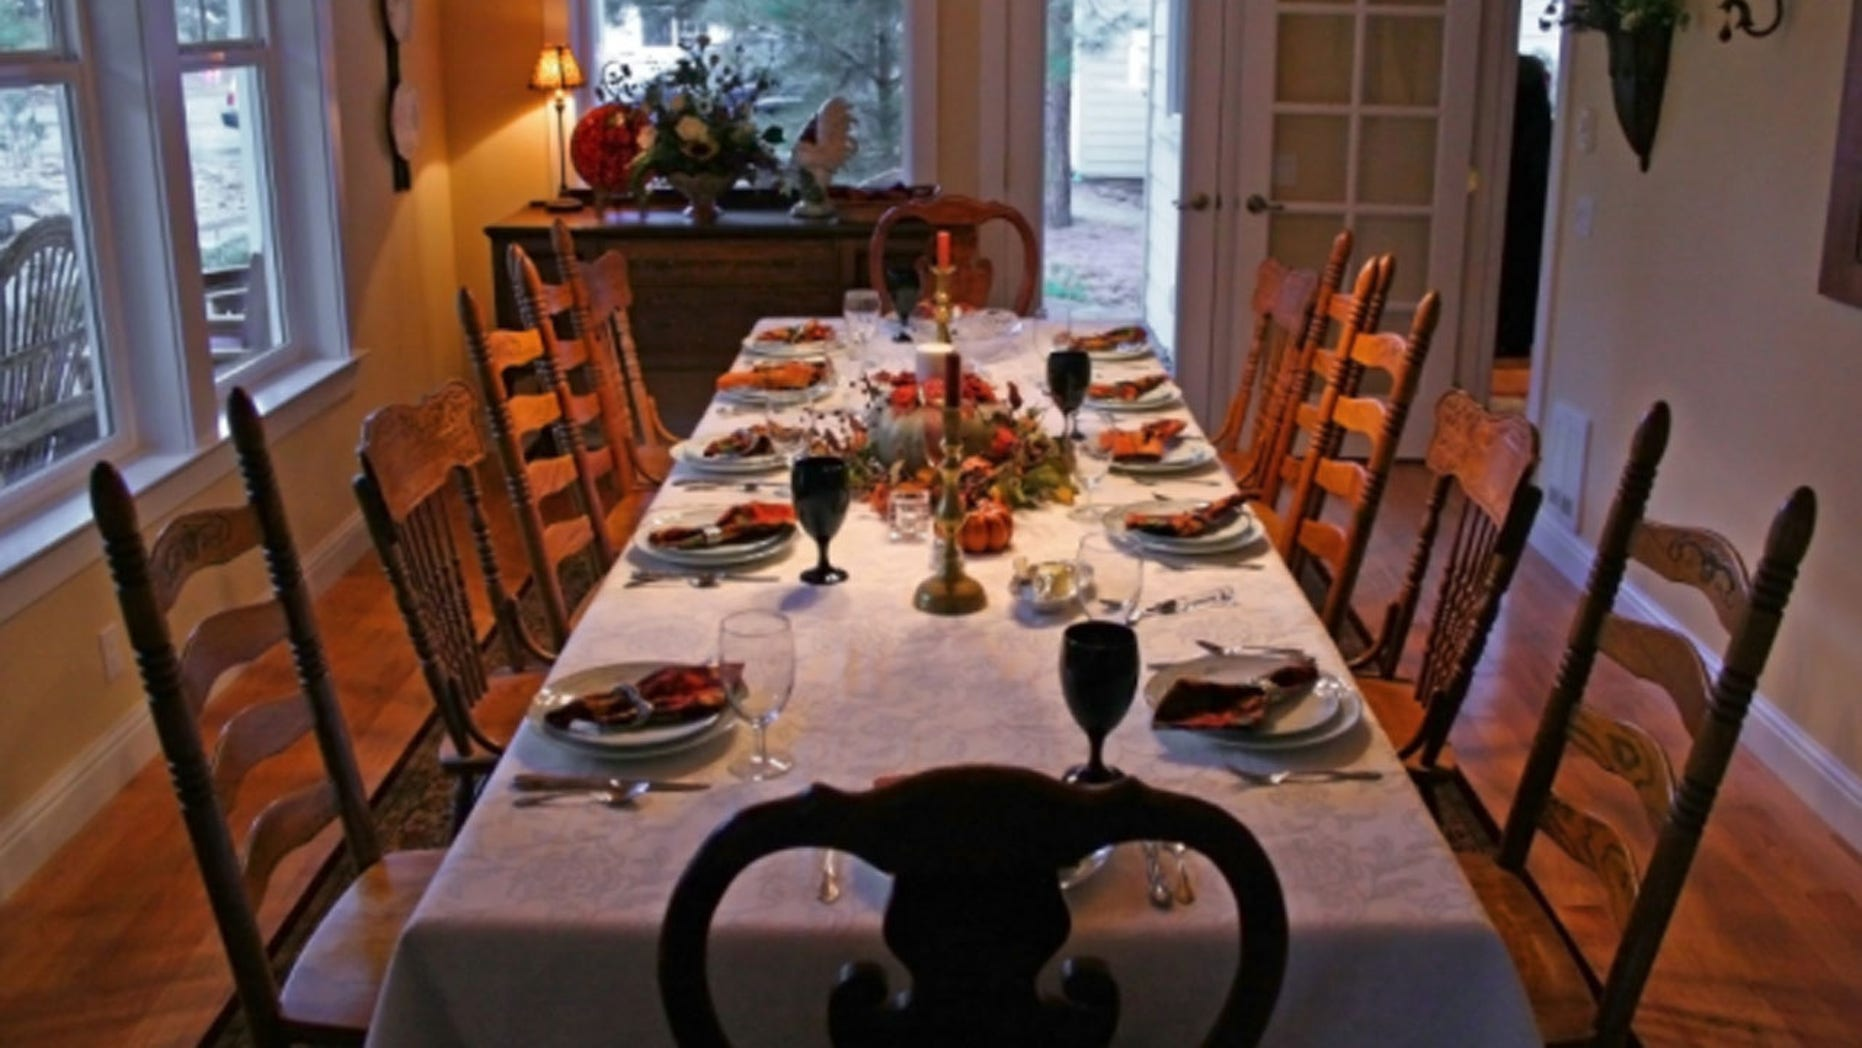 FILE: The average cost of Thanksgiving dinner for 10 is $49.12.